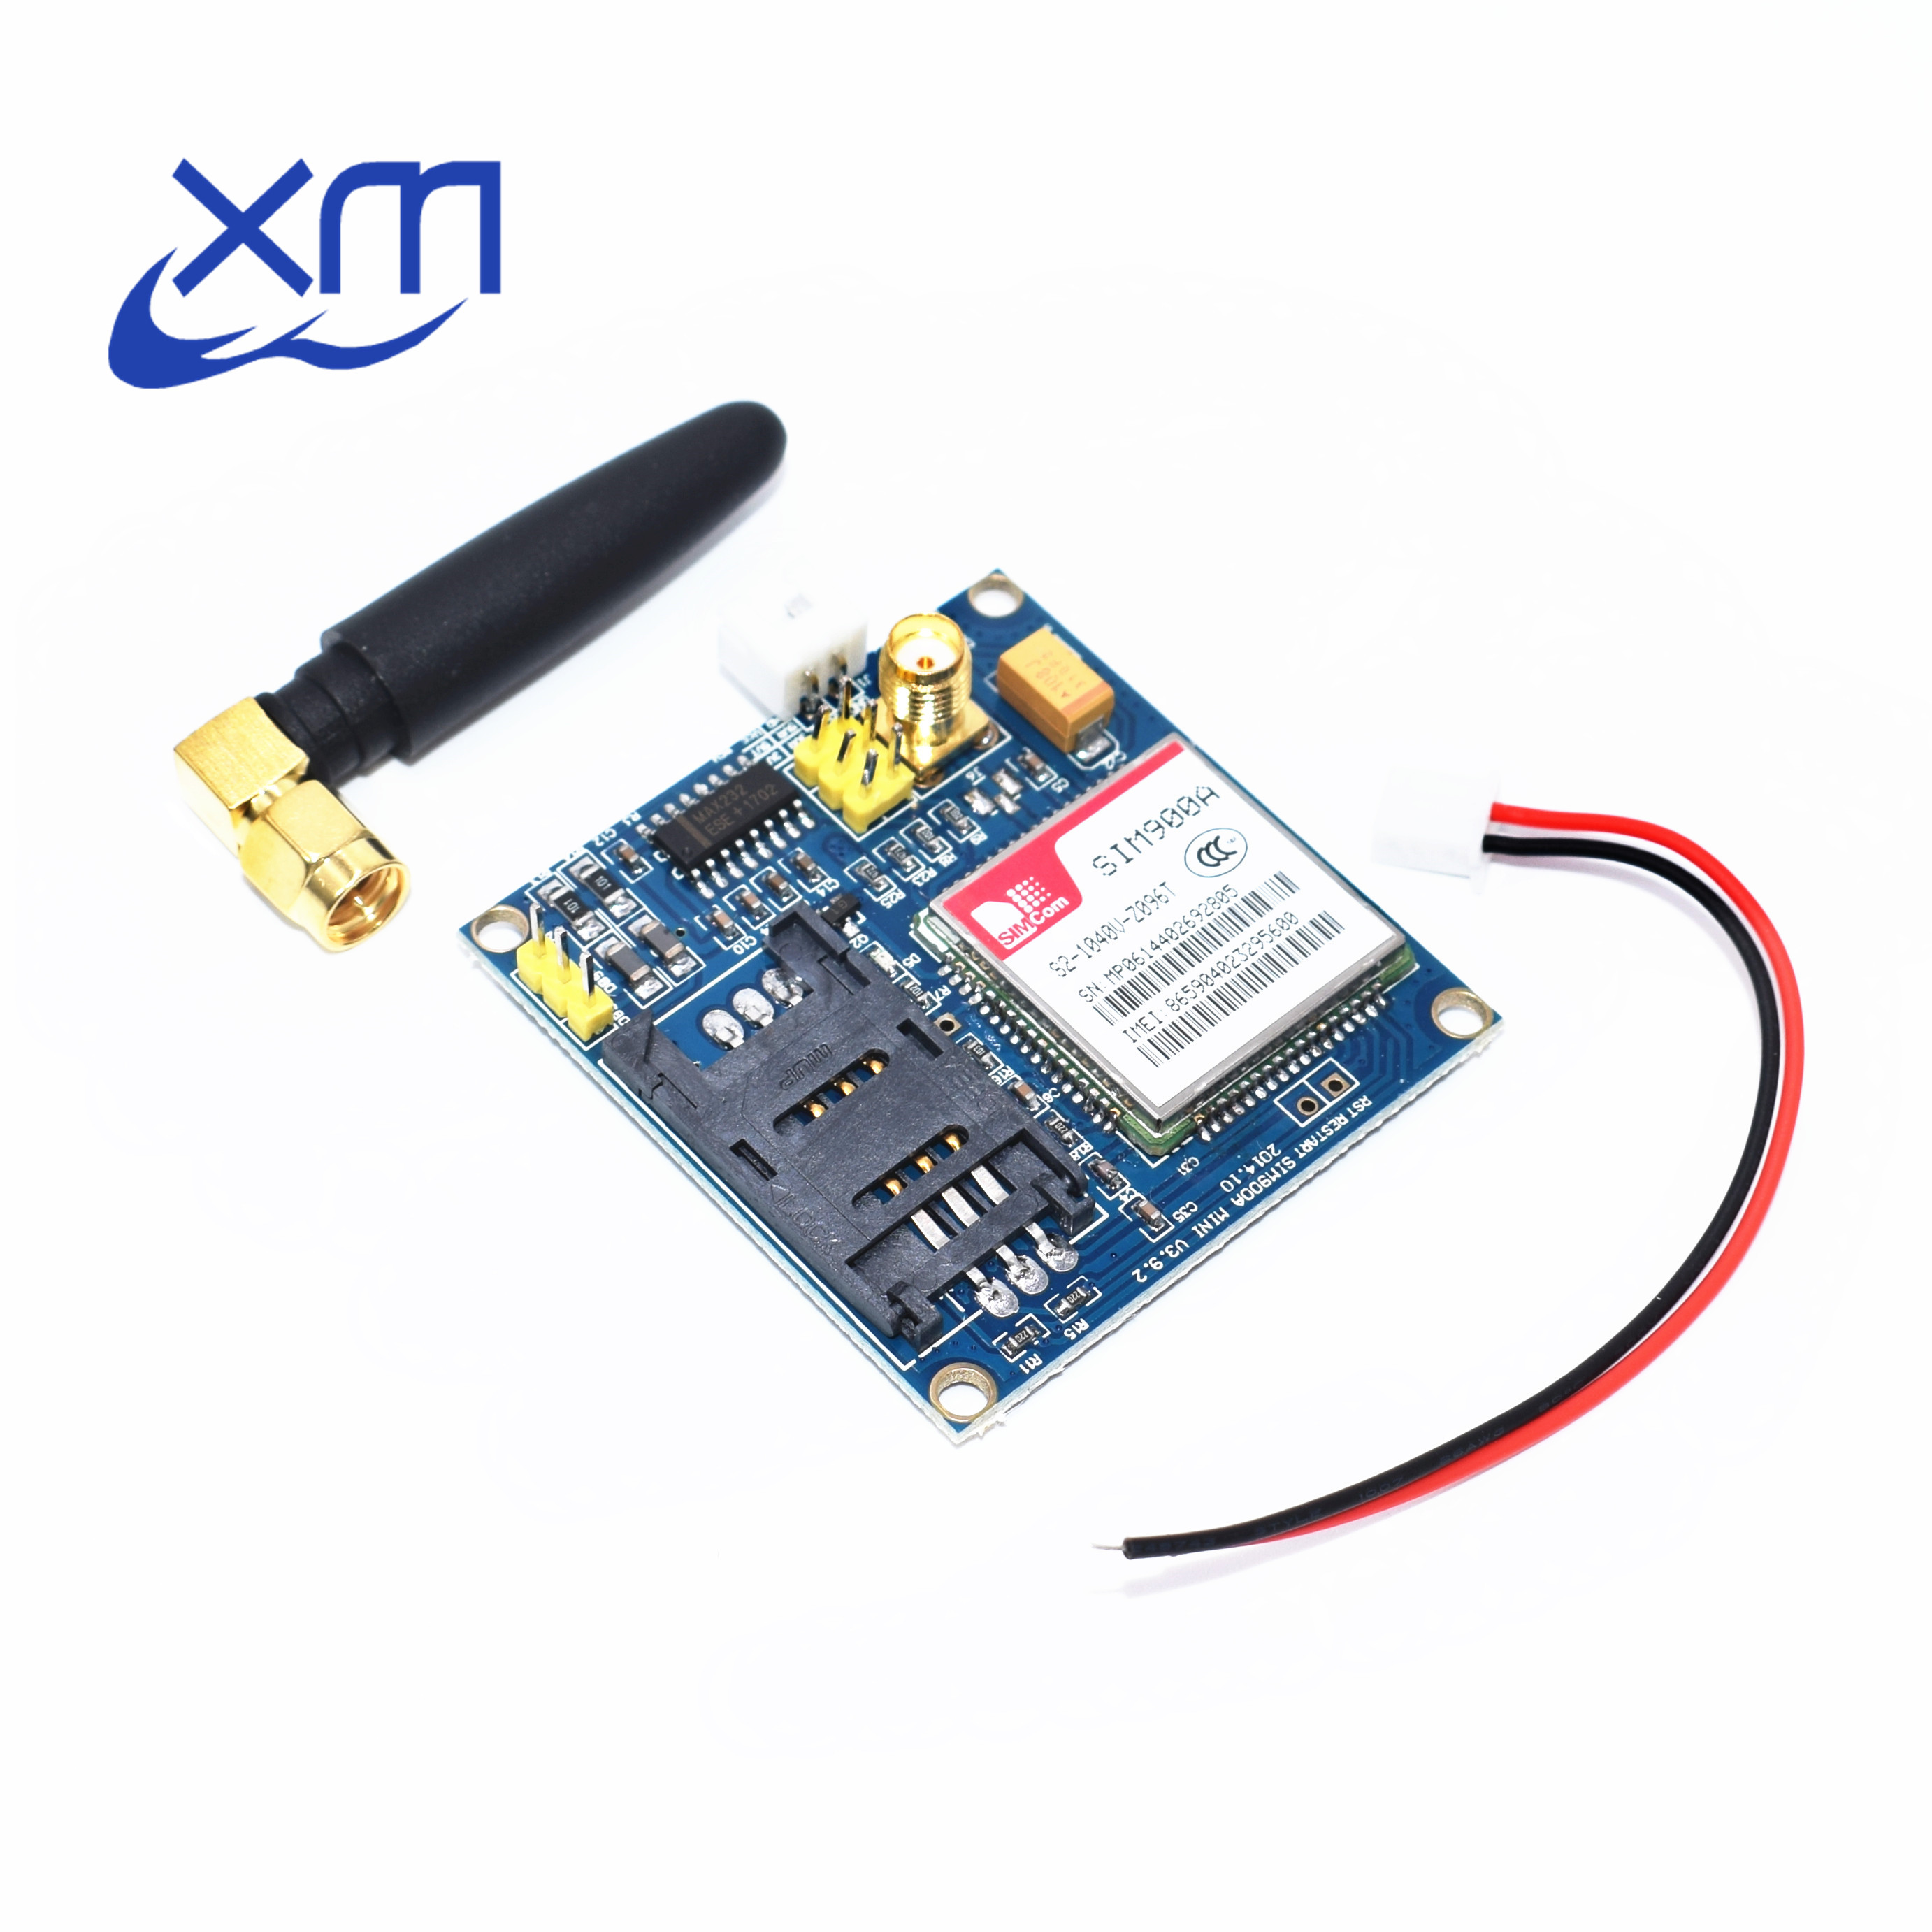 Free shipping 1PCS/LOT New SIM900A SIM900 MINI V4.0 Wireless Data Transmission Module GSM GPRS Board Kit w/Antenna C83